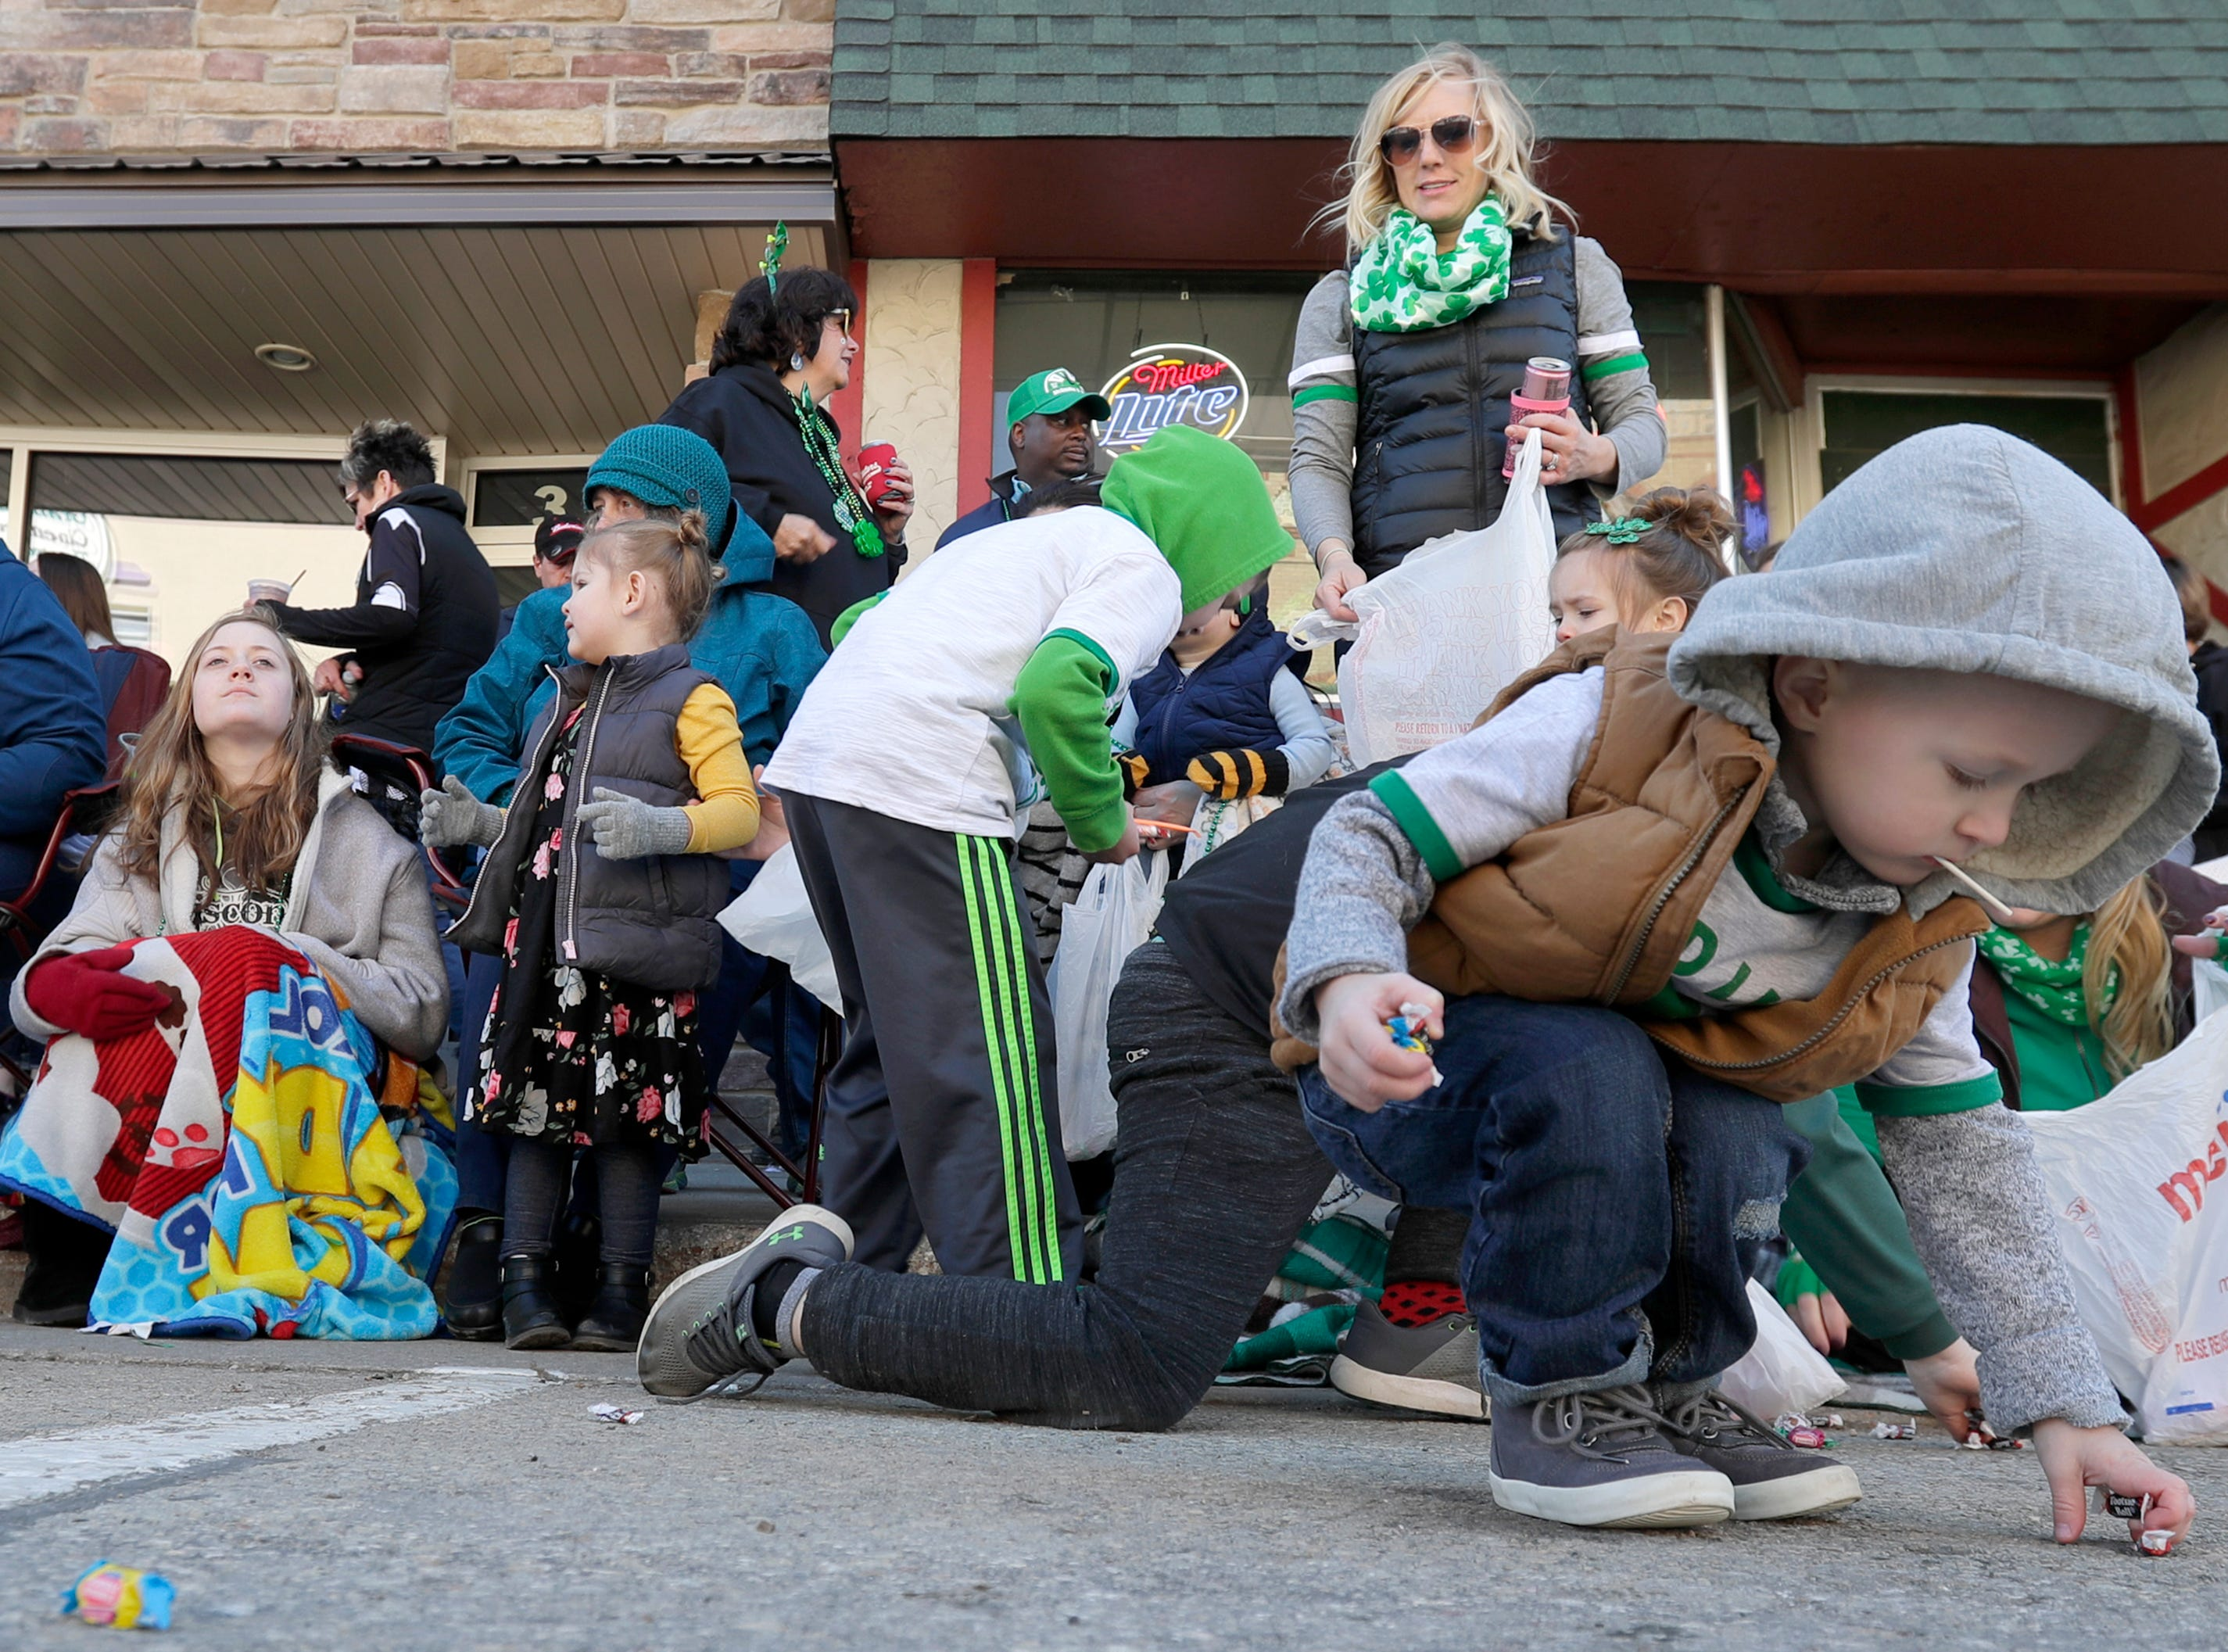 Mason Olinger collects candy during the New Dublin St. Patrick's Day Grand Parade on Saturday, March 23, 2019, in New London, Wis.Wm. Glasheen/USA TODAY NETWORK-Wisconsin.